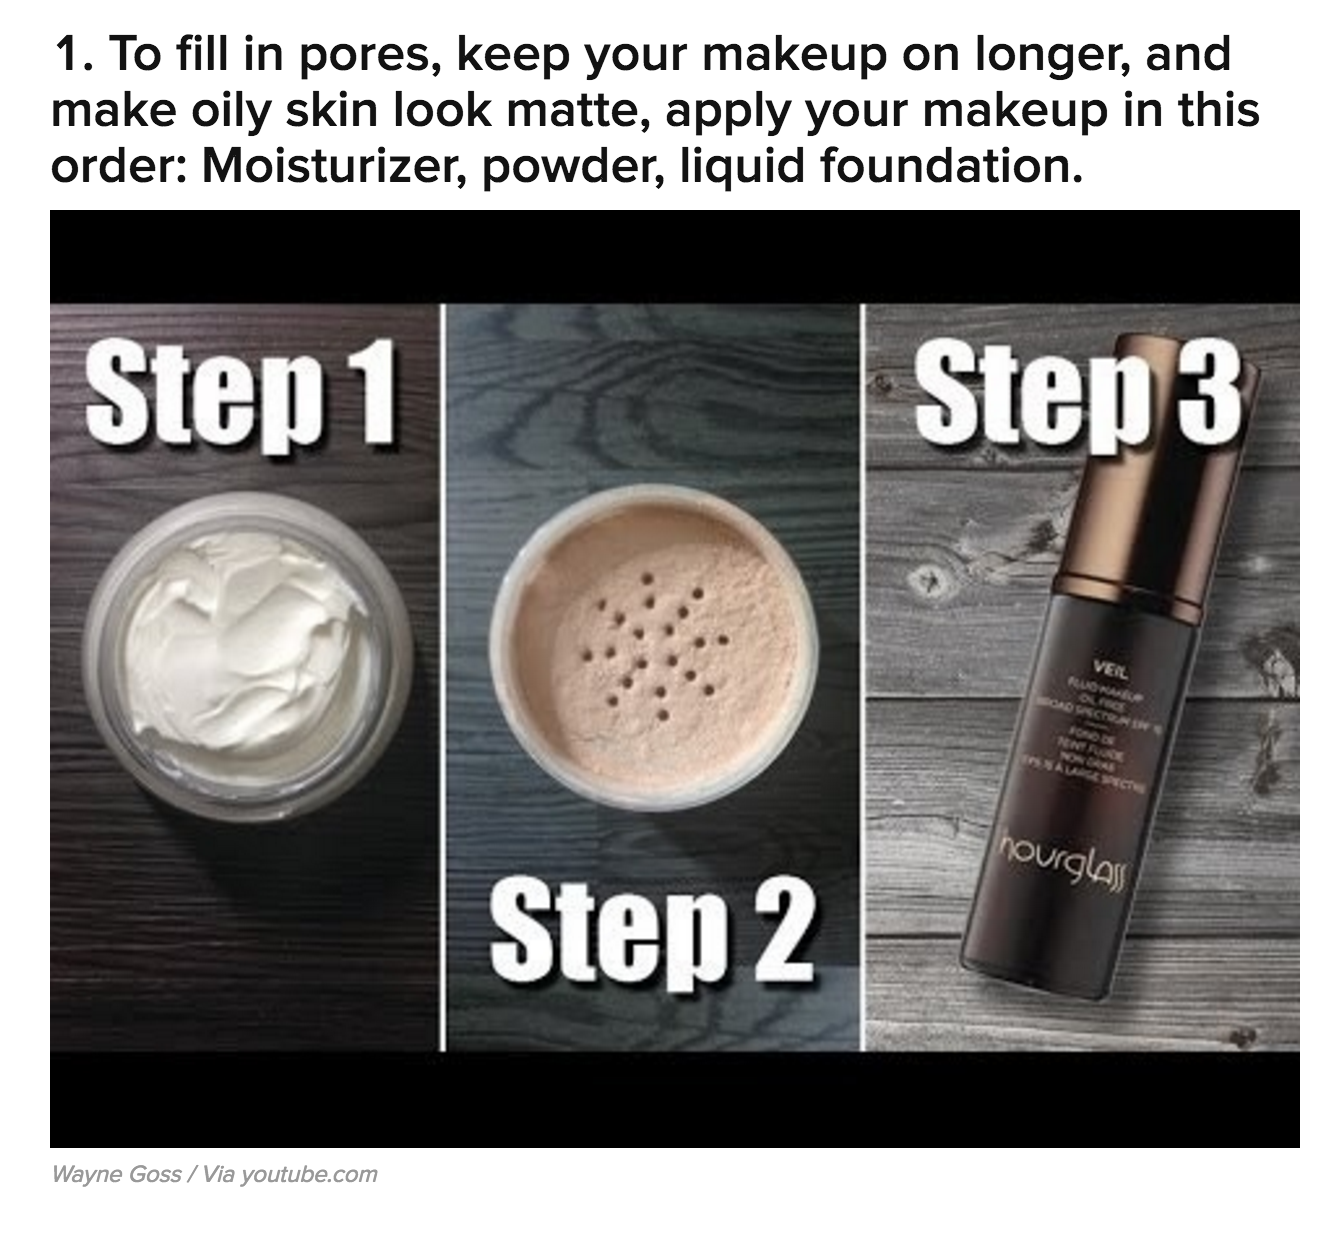 Apply your makeup in this order to make oily skin look